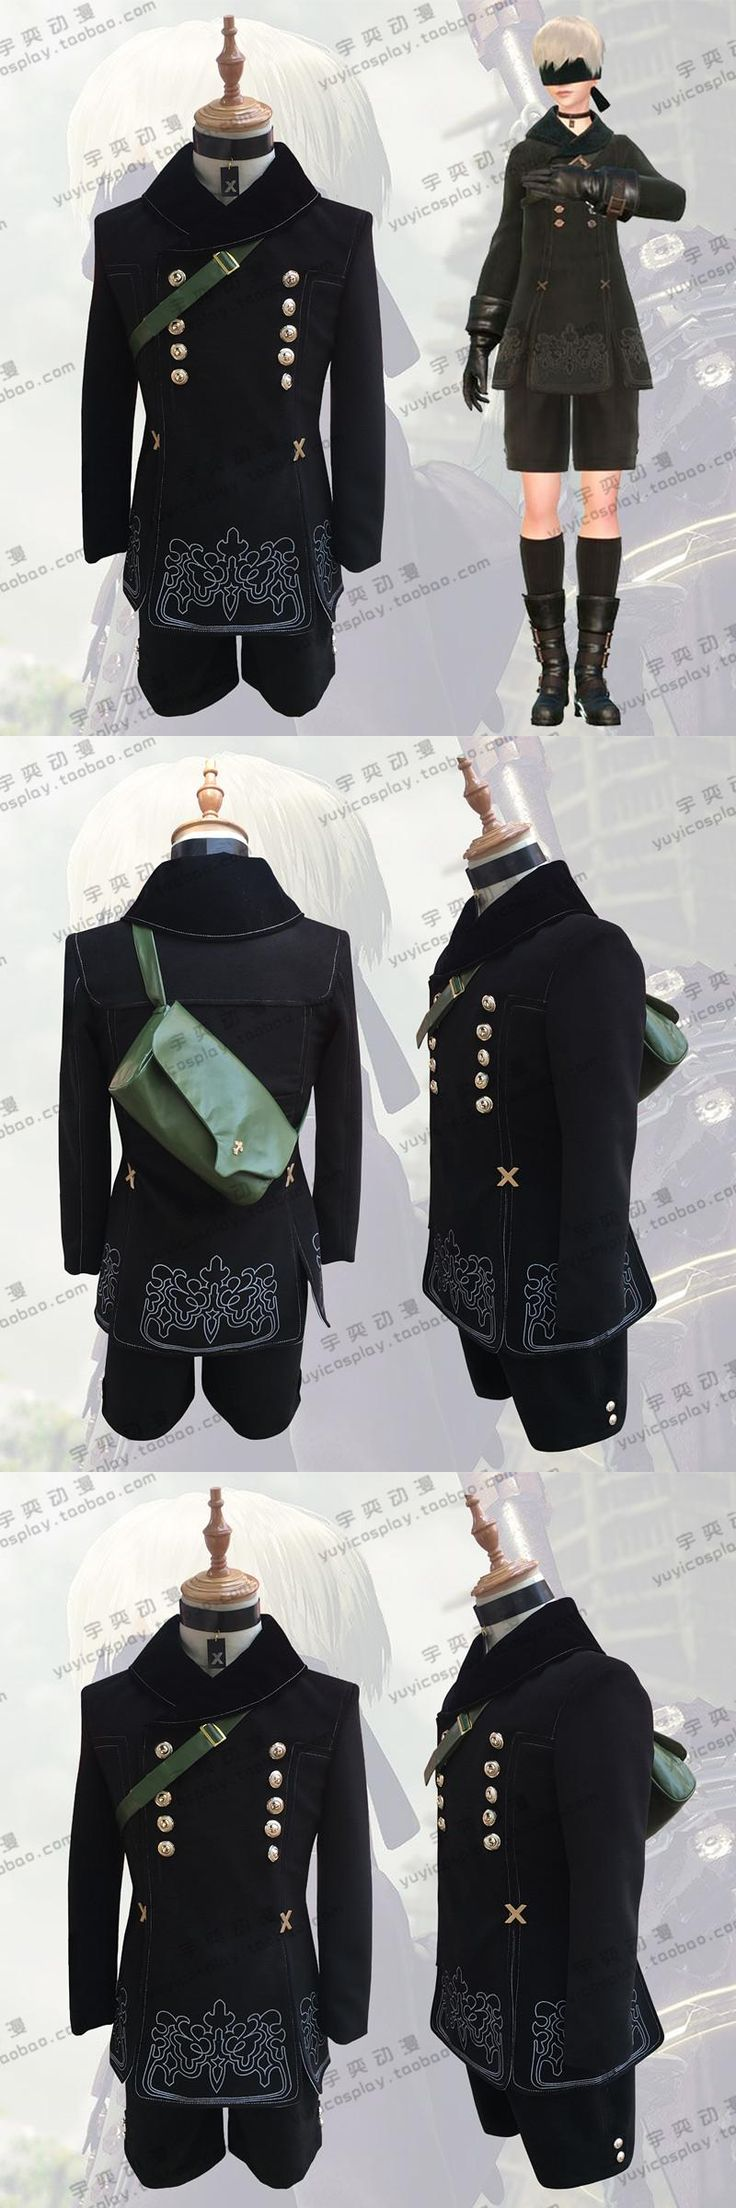 New Game NieR Automata 9S No. 2 Tipo B Cosplay Costumes Custom-Made